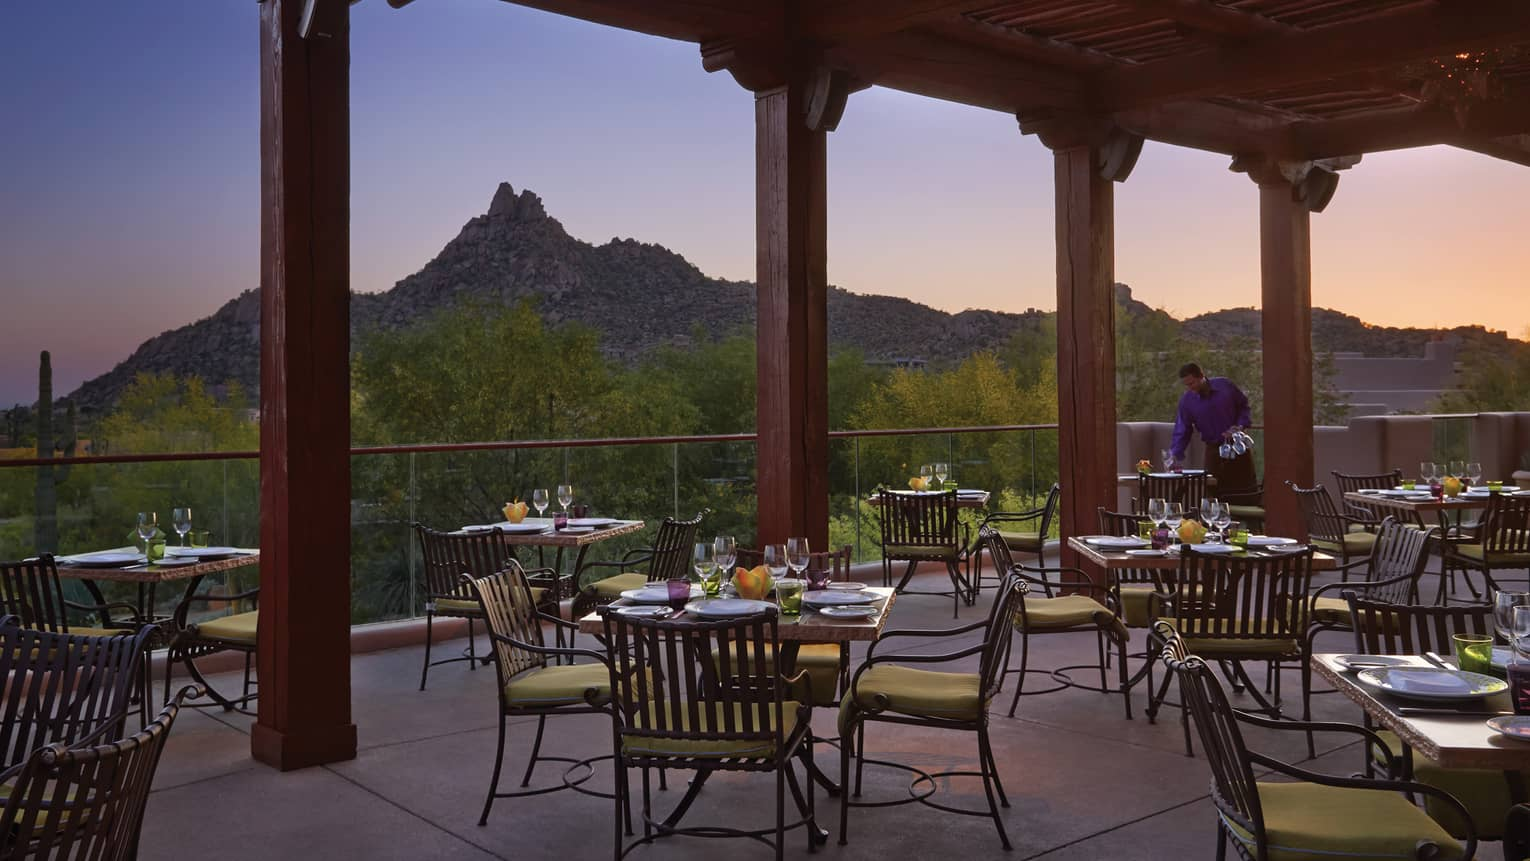 Patio dining tables under tall wood pergola, looking out at mountains, desert sunset